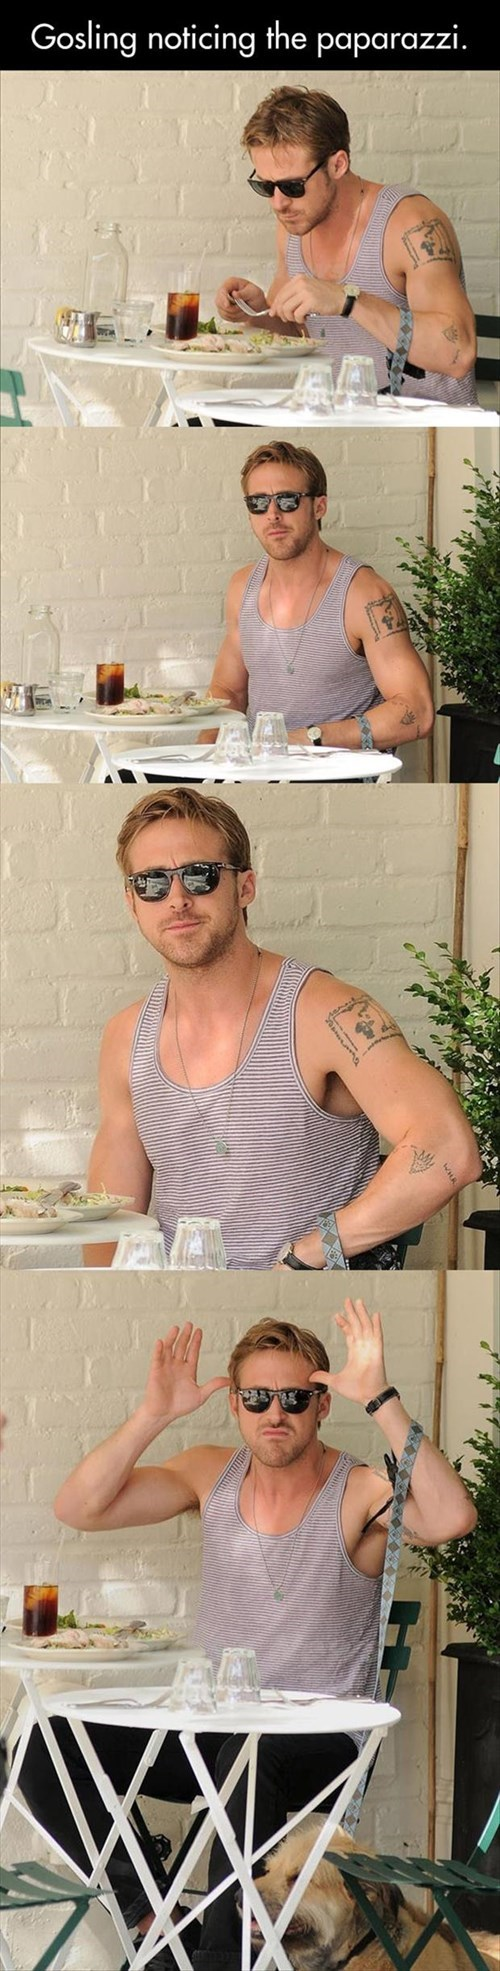 Ryan Gosling eating funny paparazzi - 8066970880